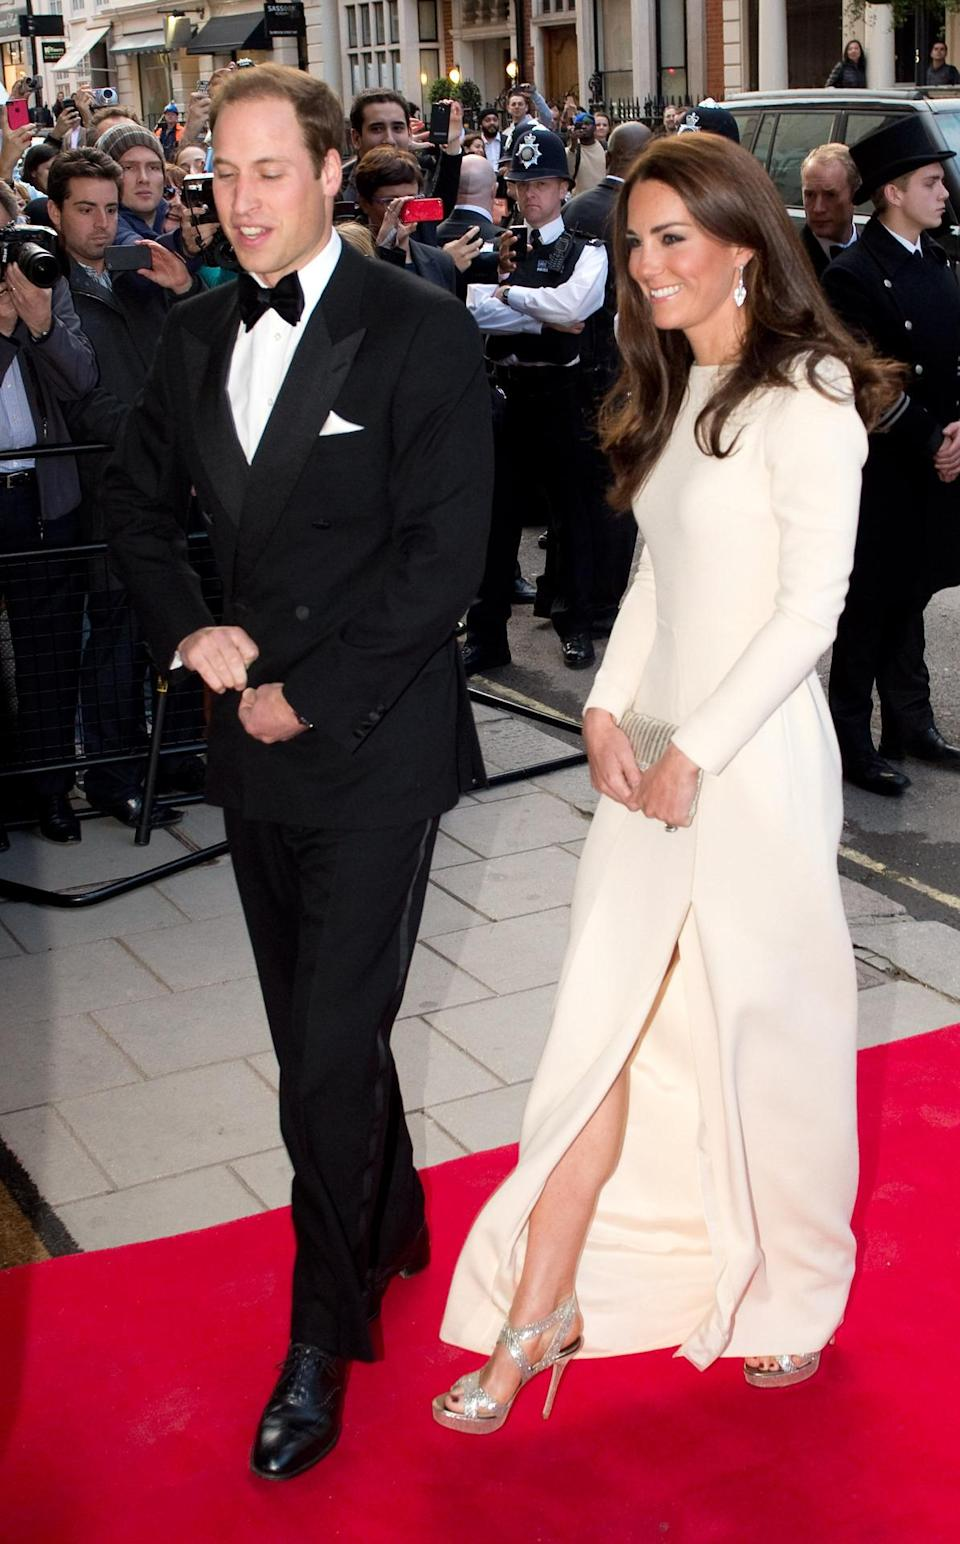 <p>Kate donned a chic white Roland Mouret evening gown for a dinner at Claridge's. She wore her favourite gold Jimmy Choos and opted for a beaded vintage clutch.</p><p><i>[Photo: PA]</i></p>